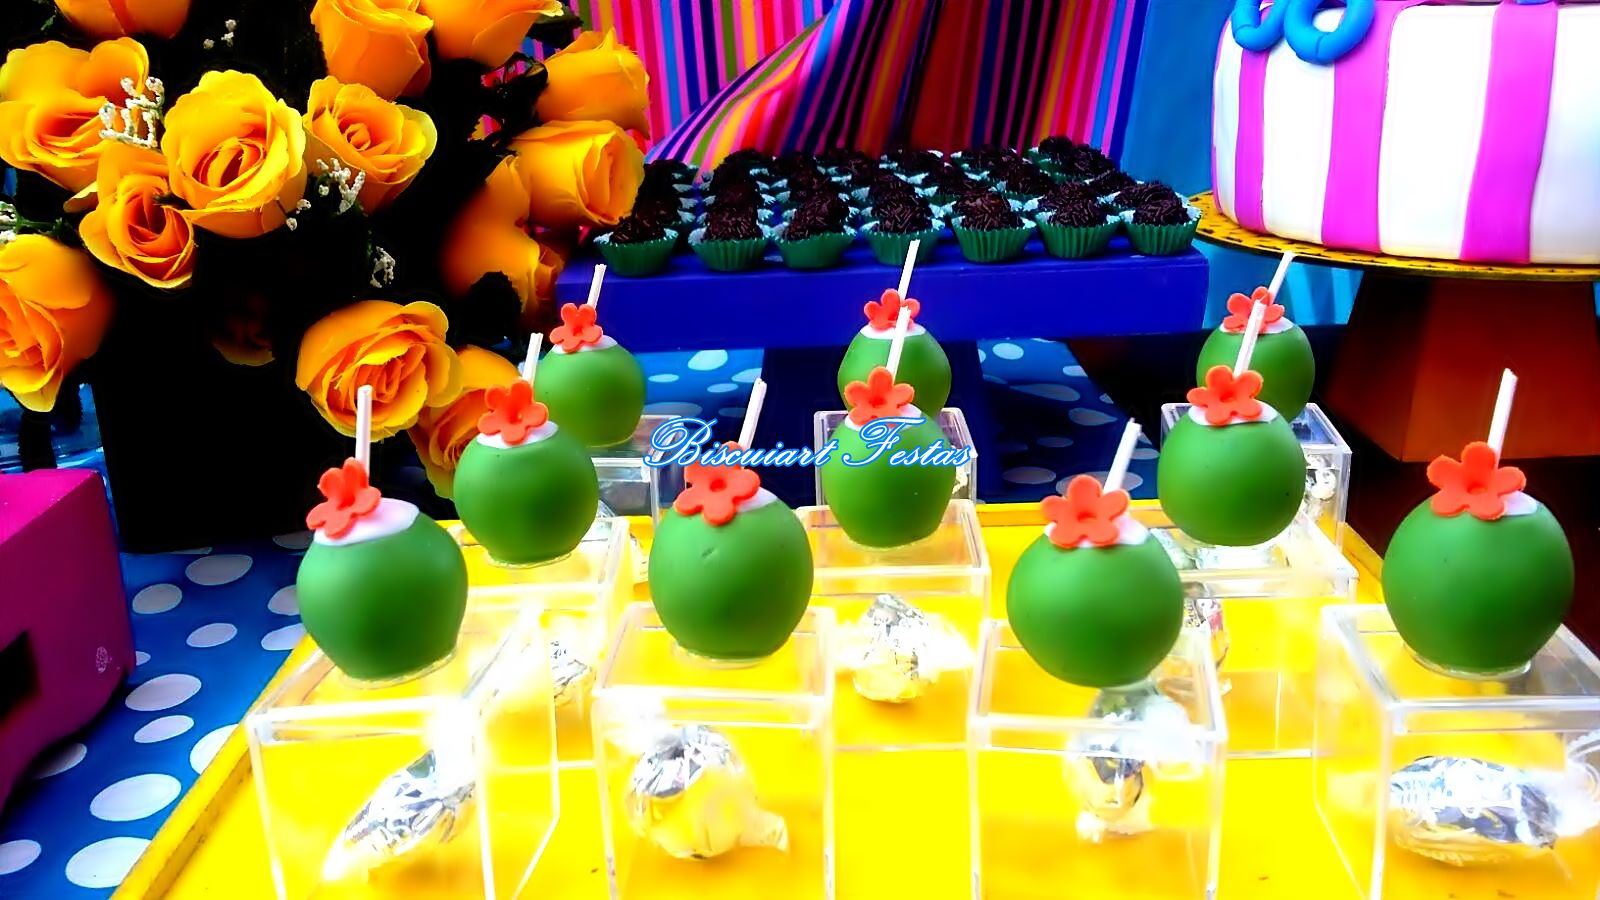 Biscuiart Festas: festa pool party, decorao pool party ...